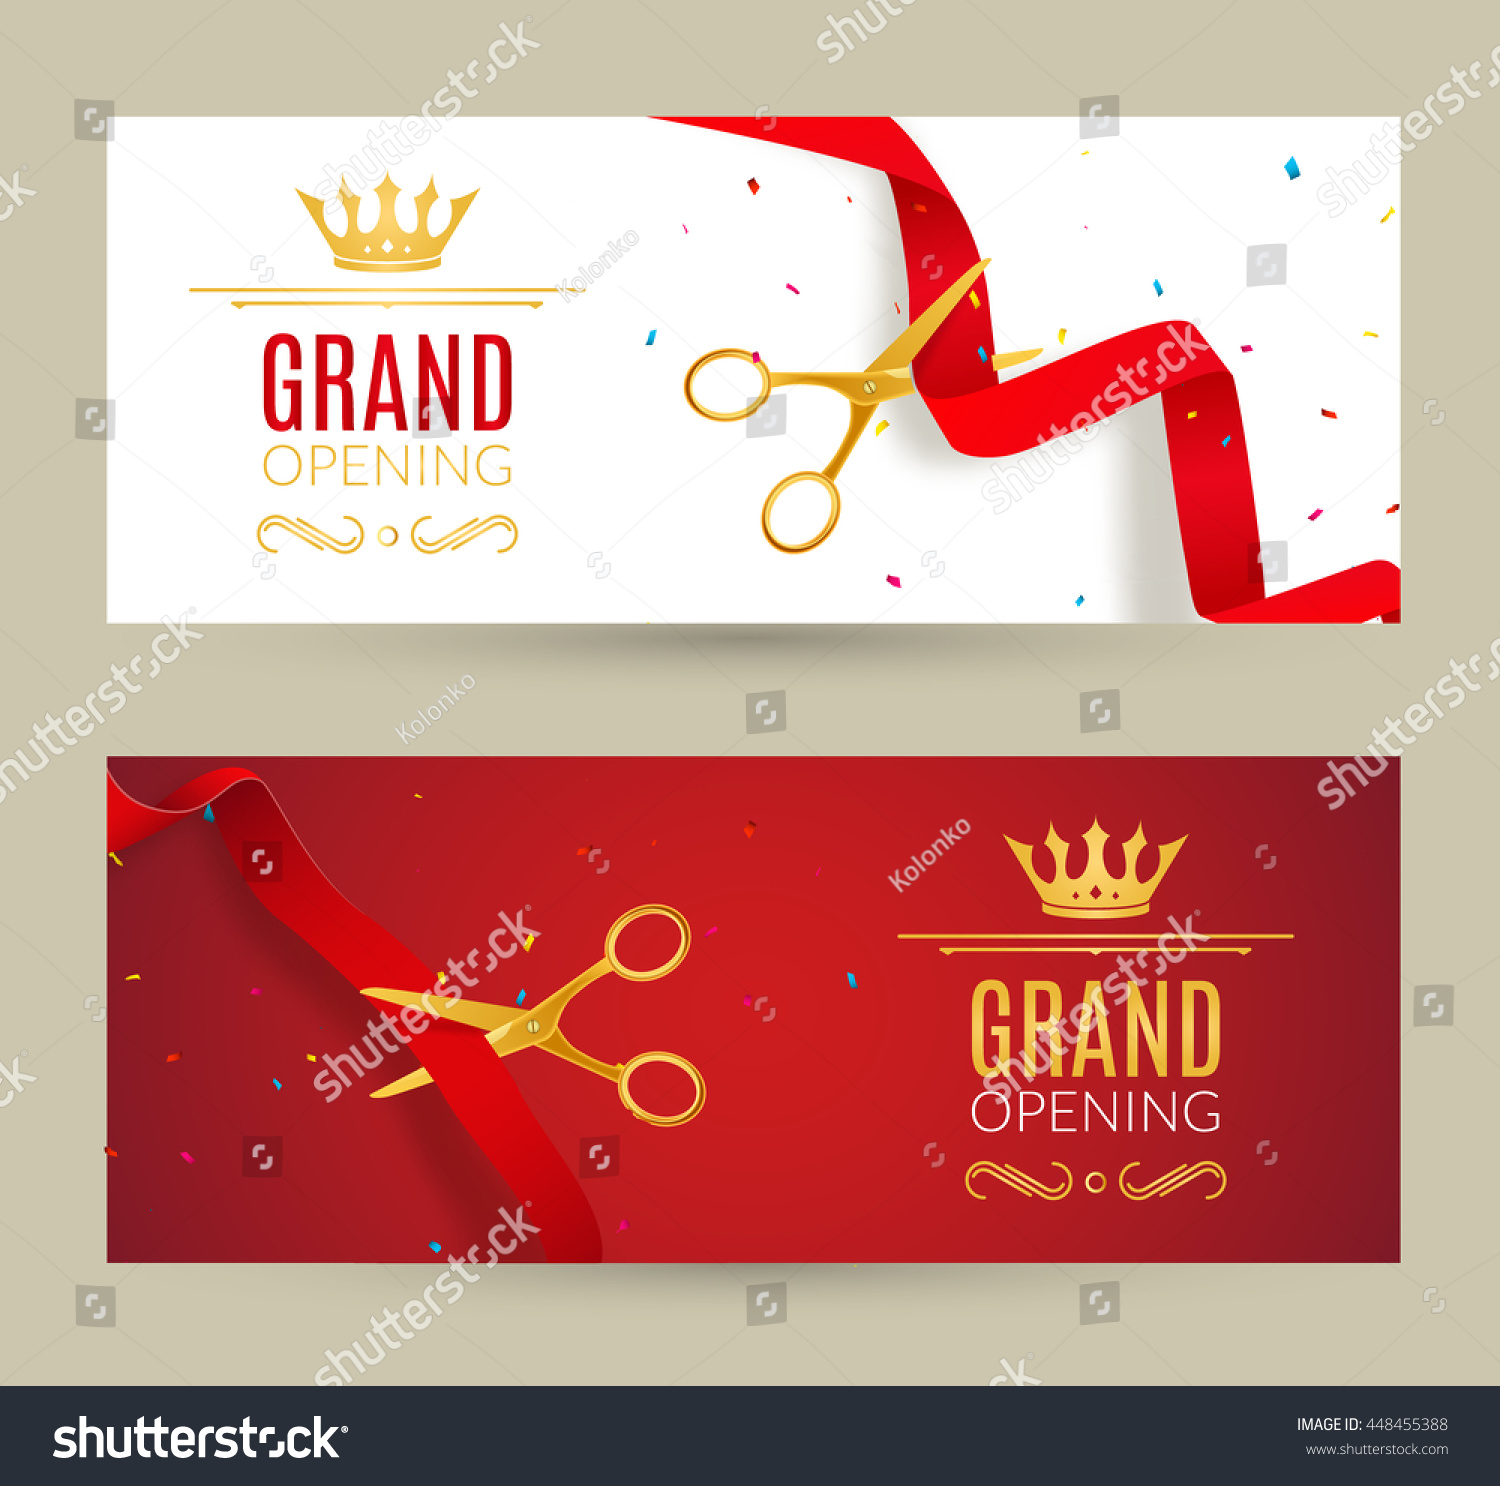 grand opening invitation banner red ribbon stock vector 448455388